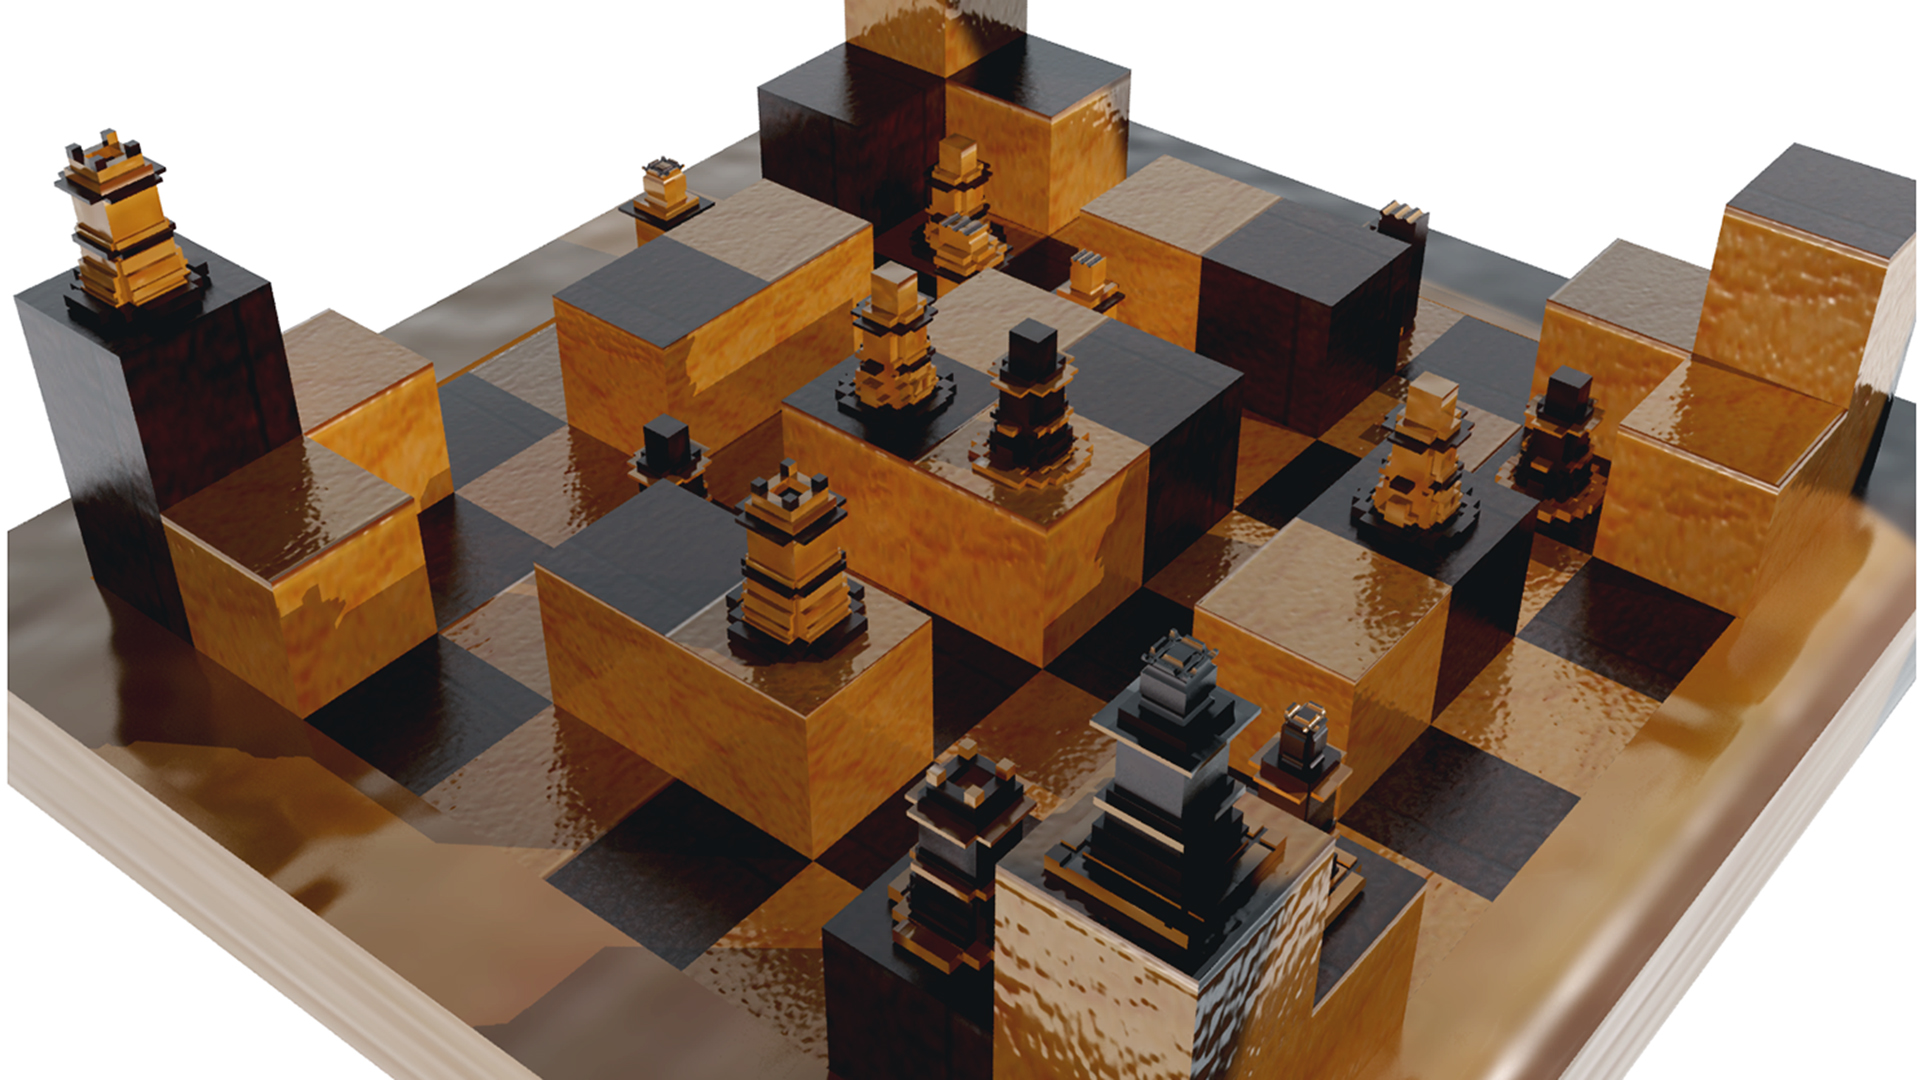 ChessSet_FoundationYear_AmarSohan_1stYear_DigitalDesign